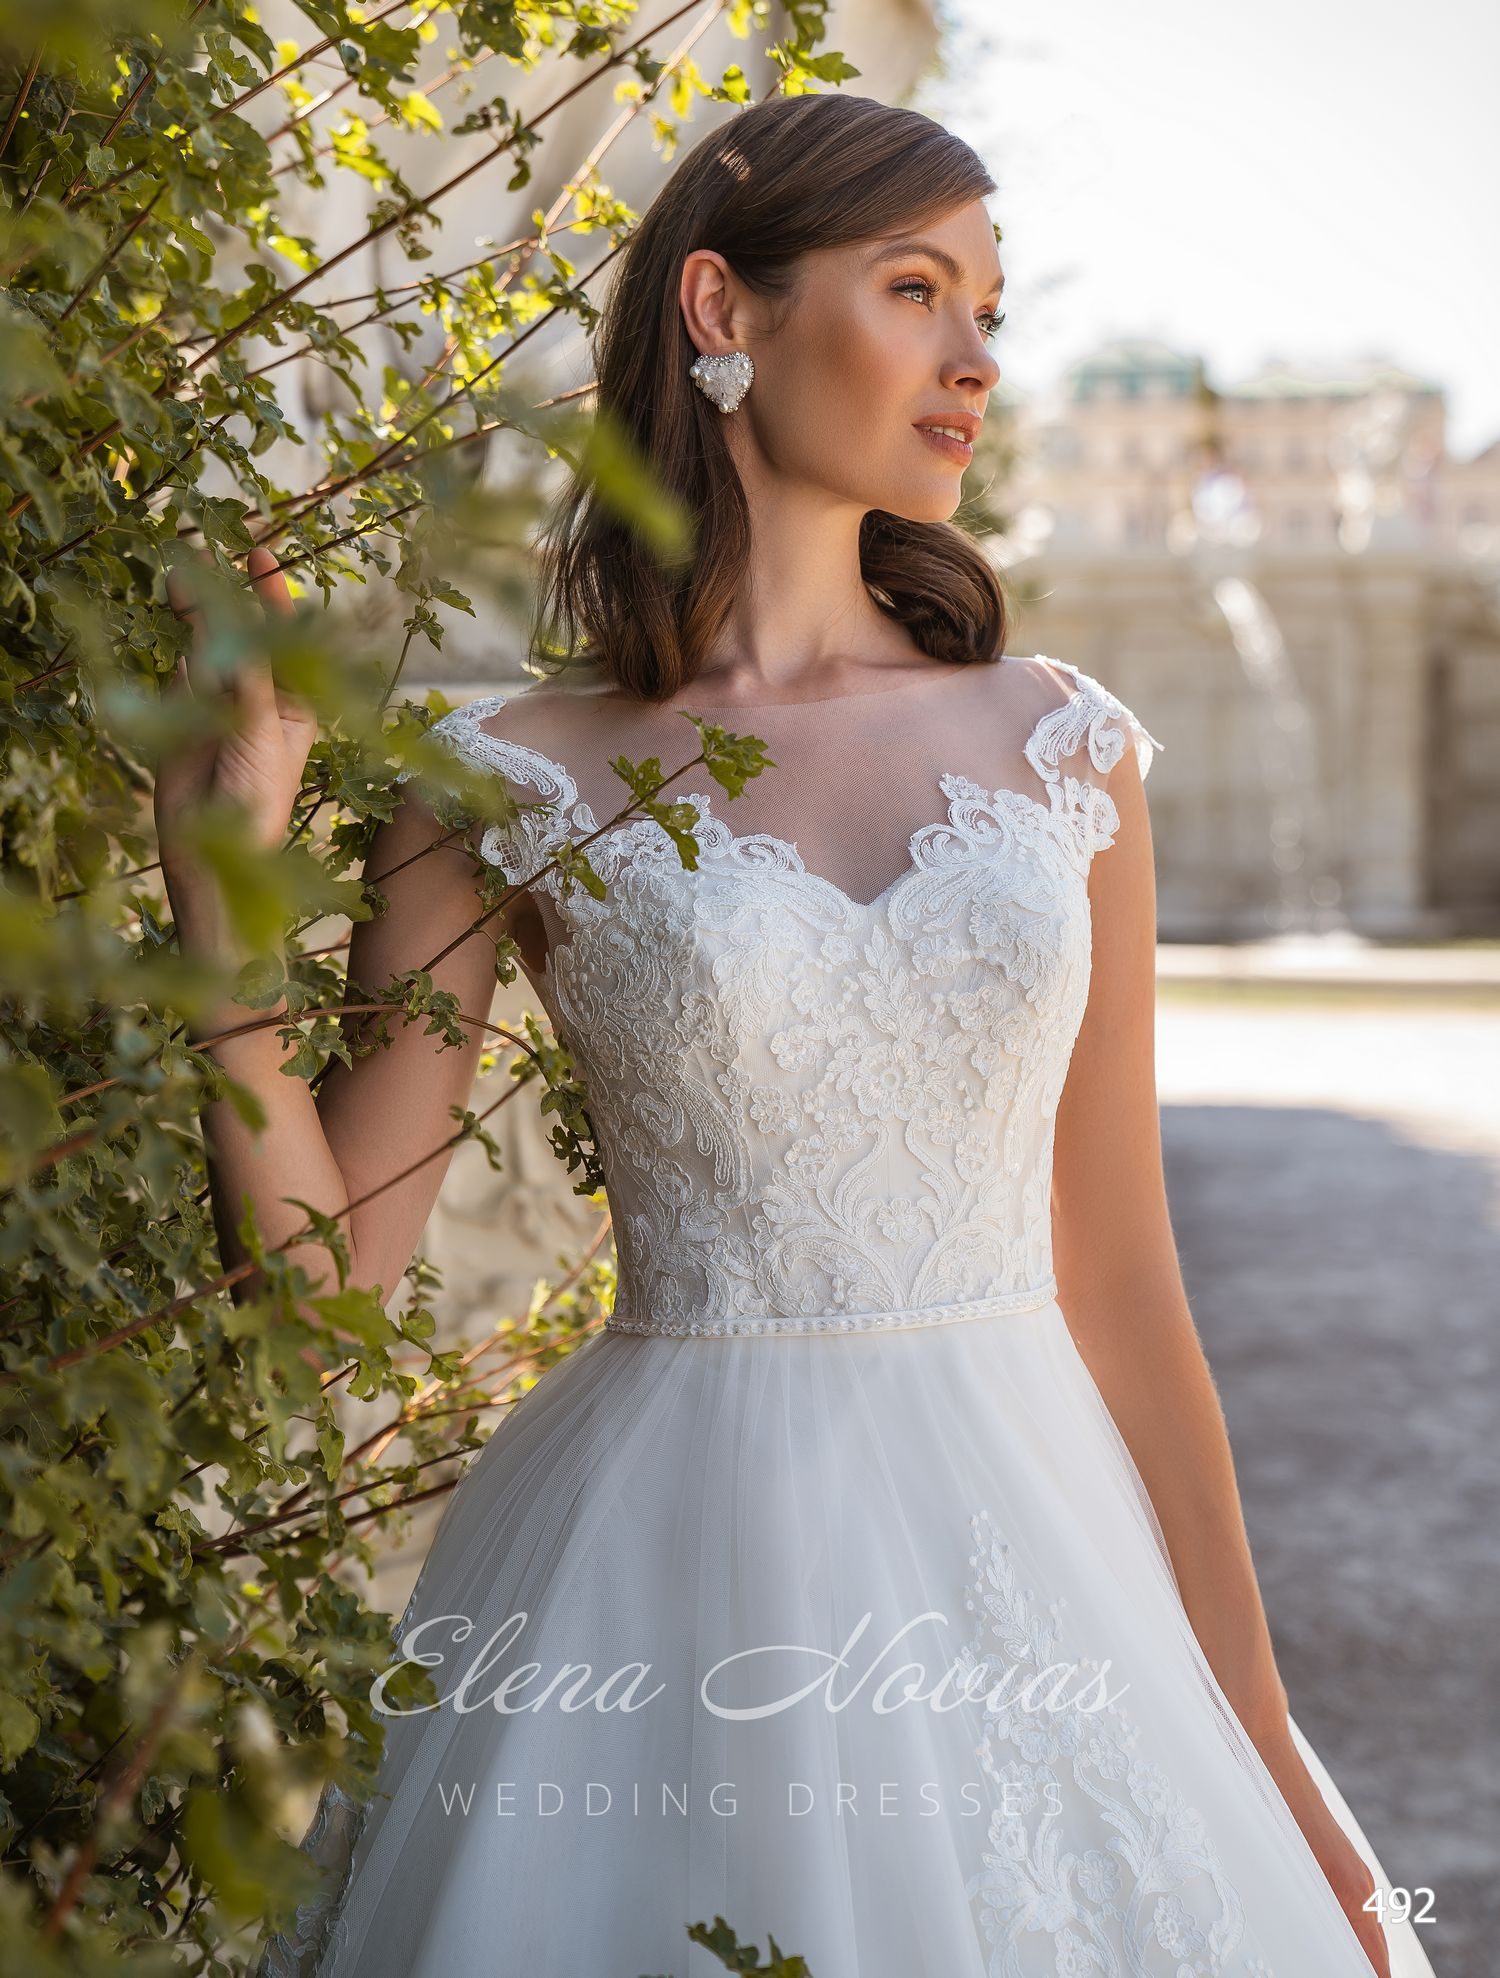 Wedding dresses 492 2